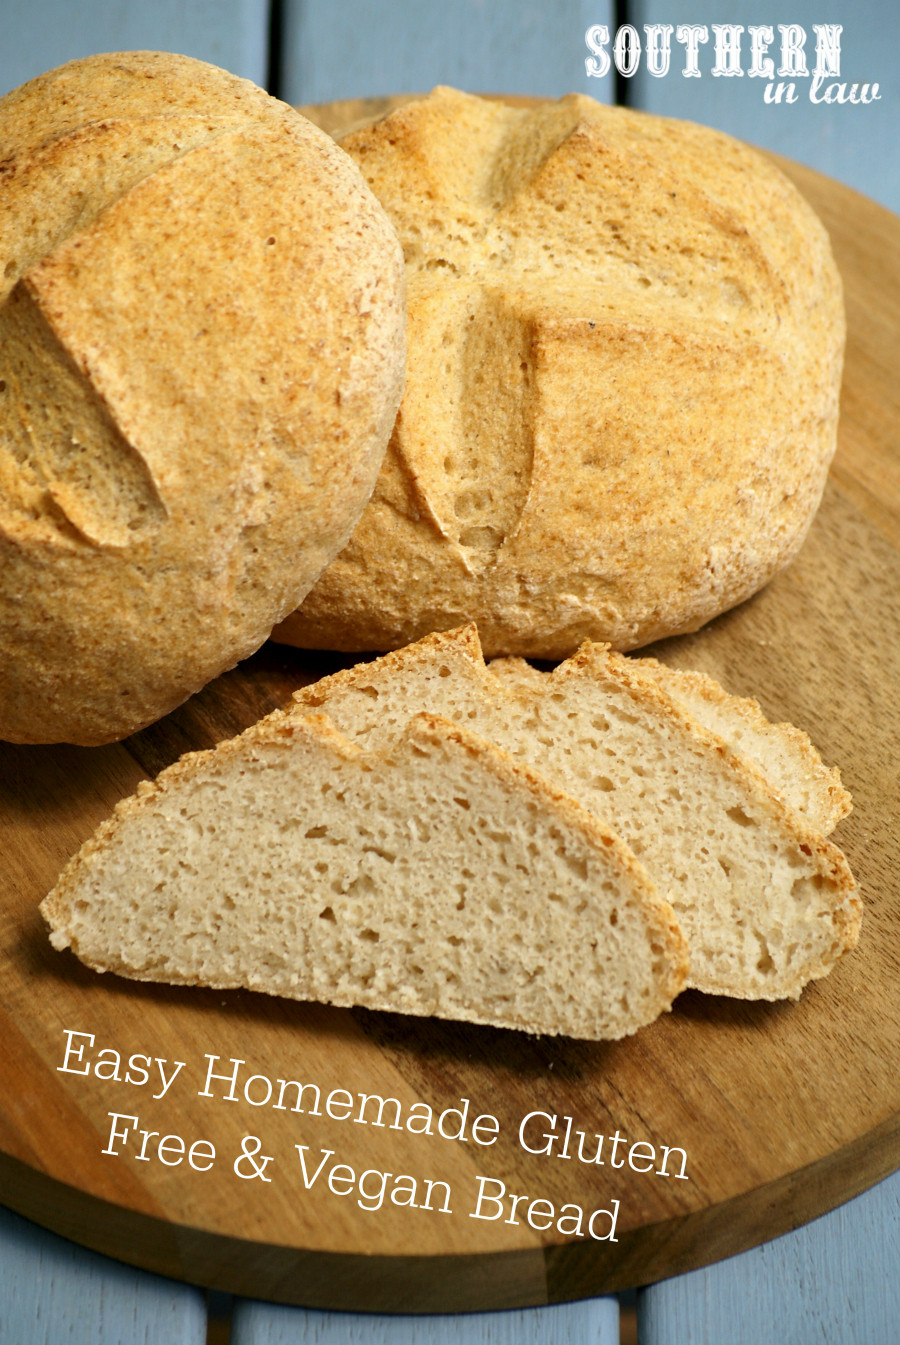 Wonder Bread Vegan  Southern In Law Recipe Easy Homemade Gluten Free and